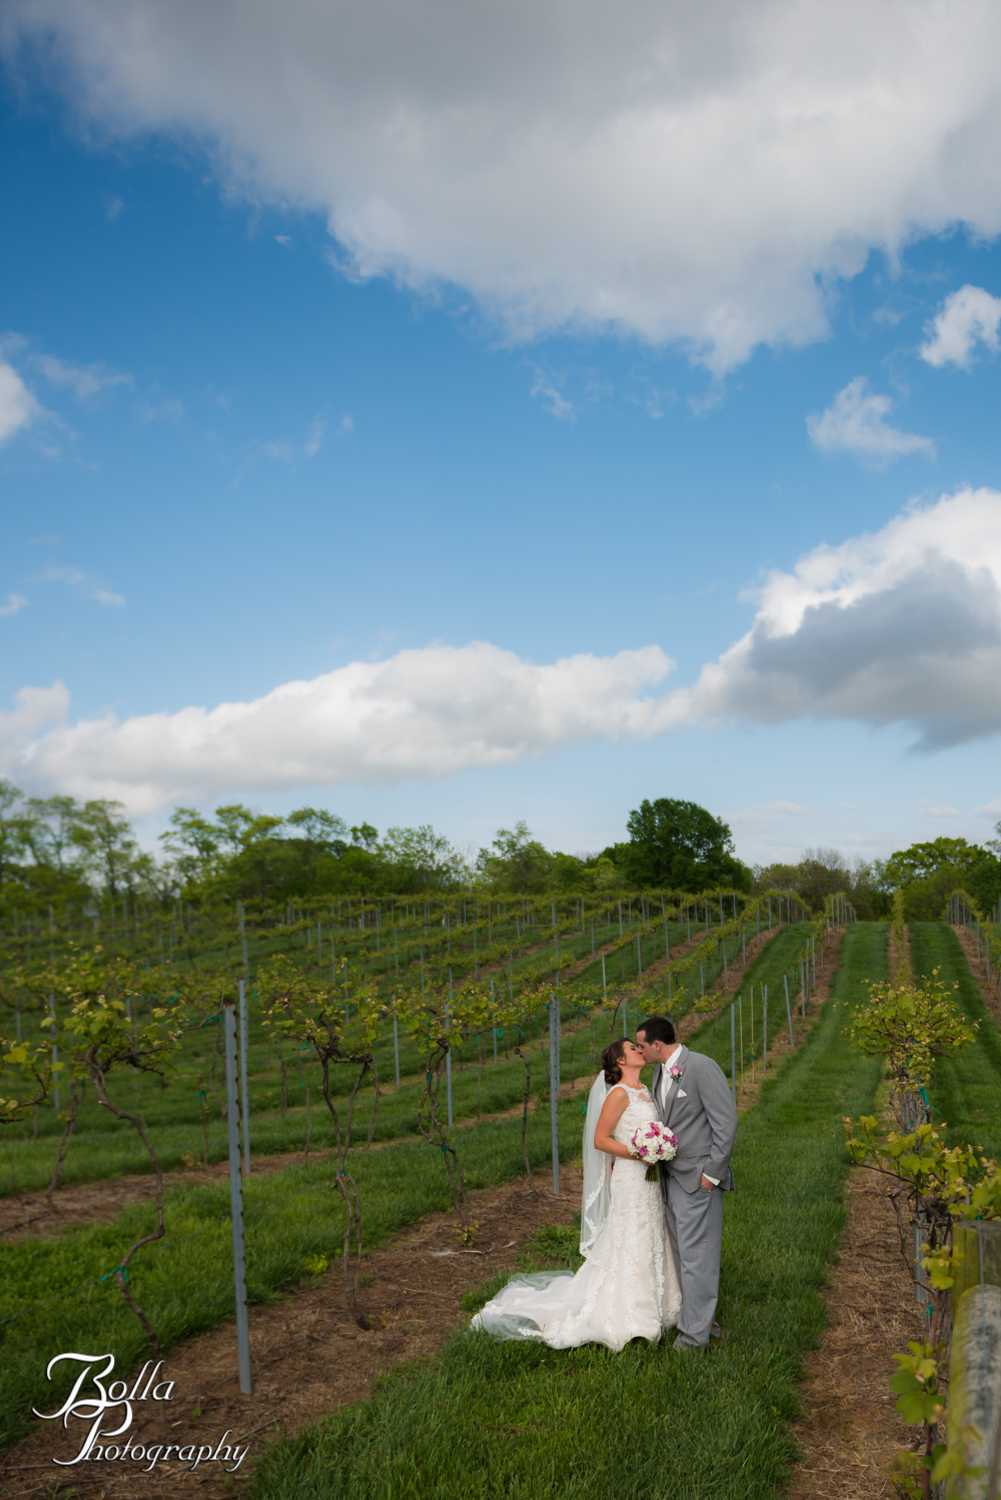 Bolla_Photography_St_Louis_wedding_photographer_Villa_Marie_Winery-0001.jpg